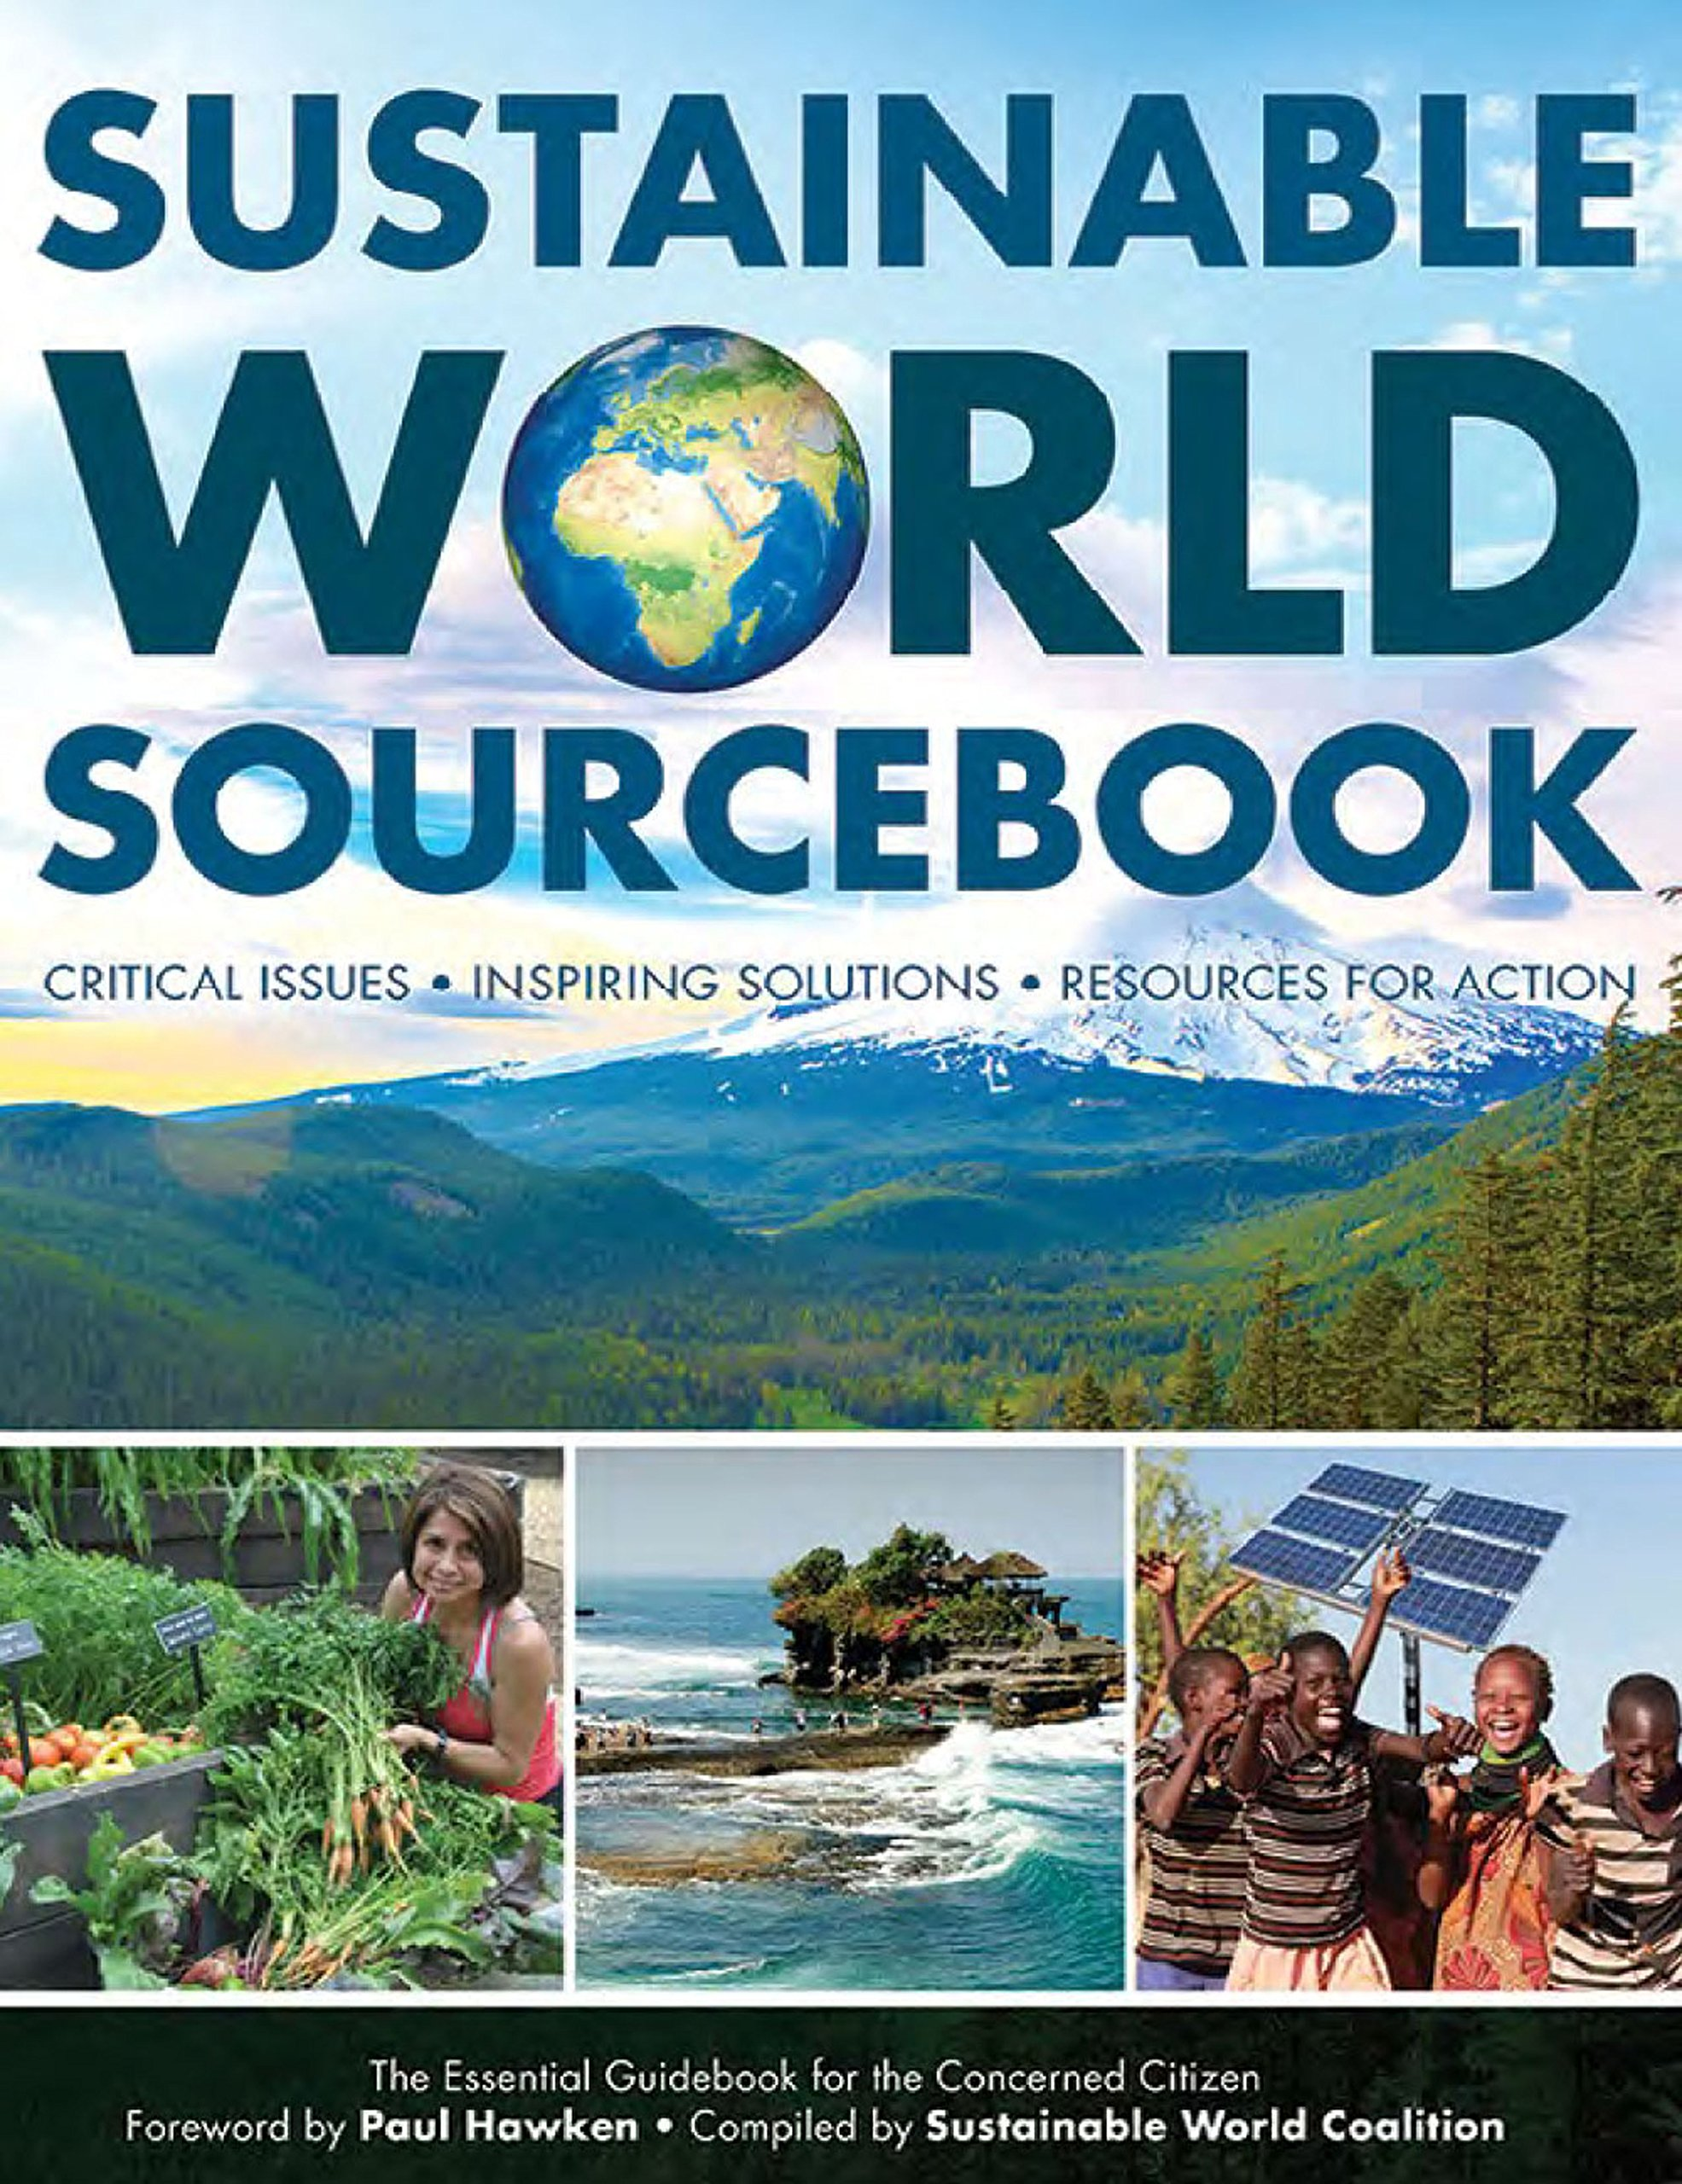 Sustainable World Sourcebook, Critical Issues â?¢ Inspiring Solutions â?¢ Resources for Action, the Essential Guidebook for the Concerned Citizen, Vinit Allen